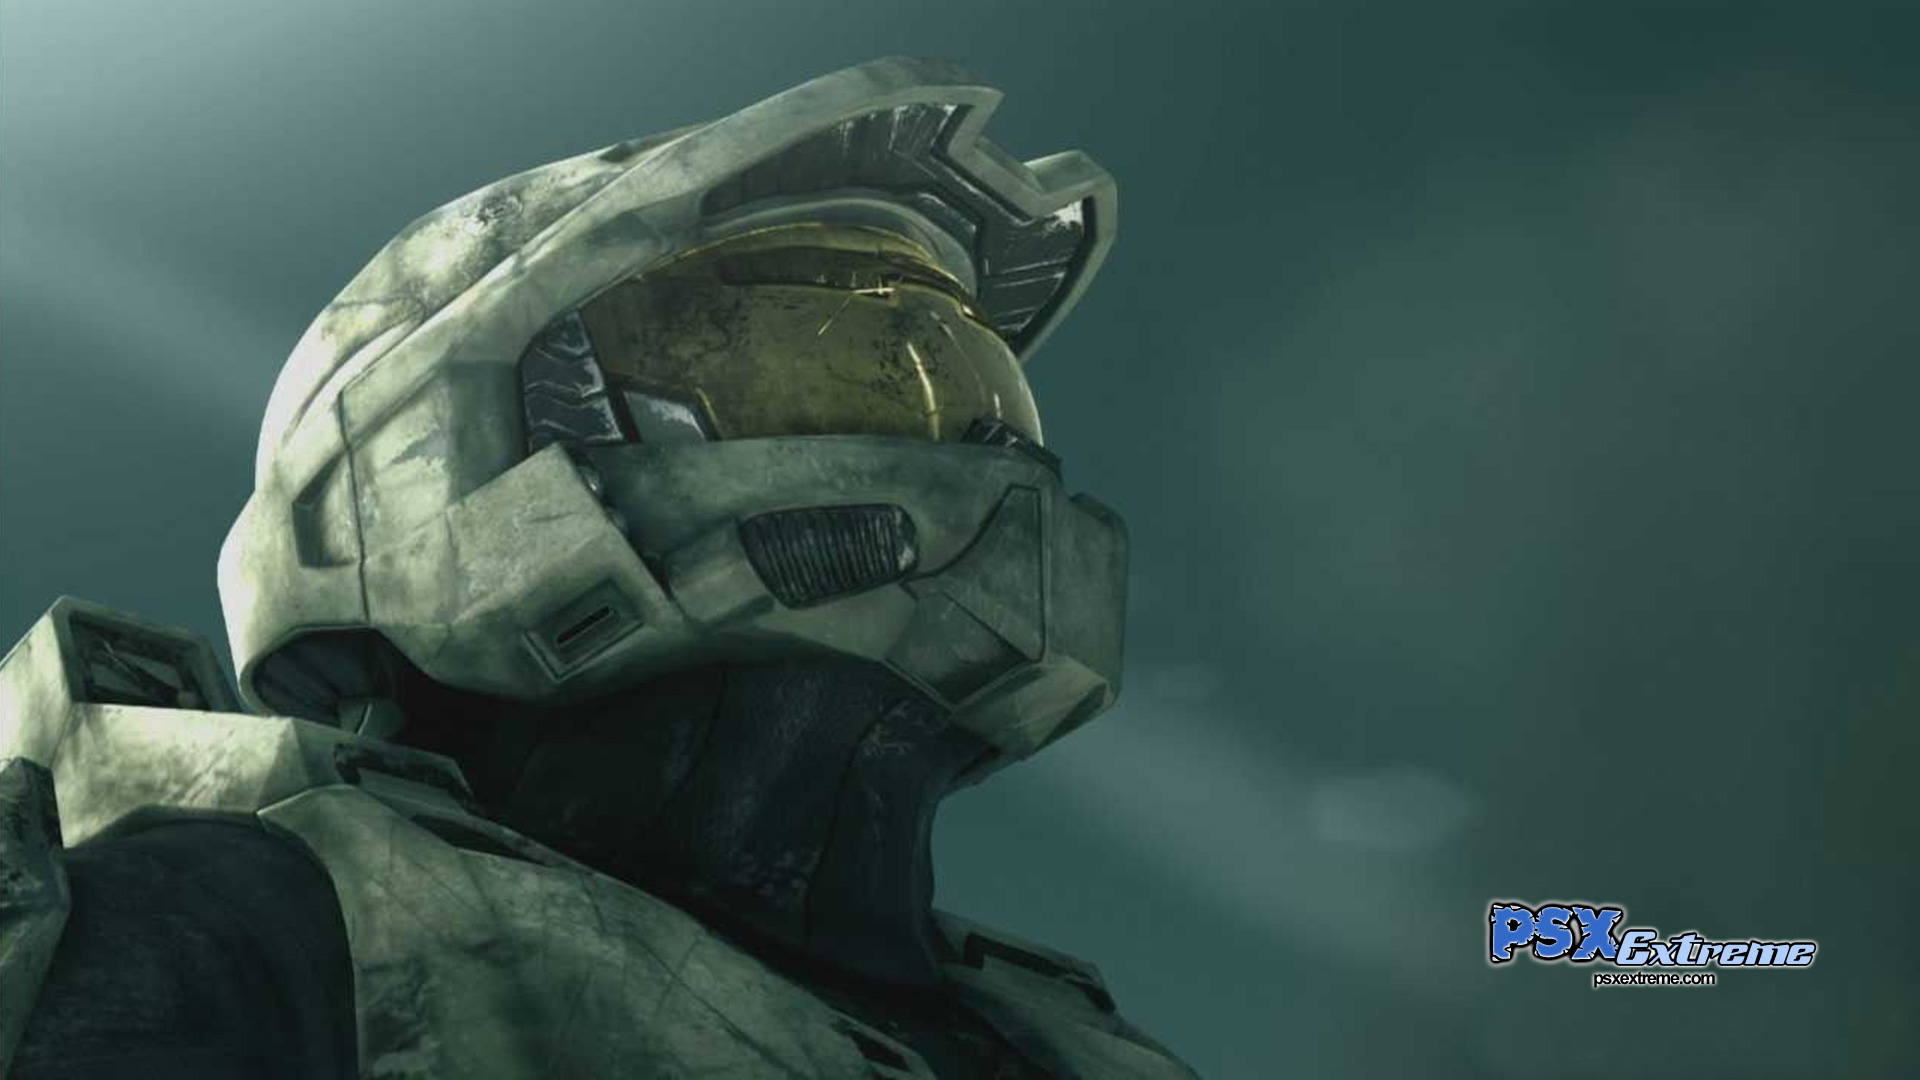 Free Download Halo 3 Wallpaper 34338 1920x1080 For Your Desktop